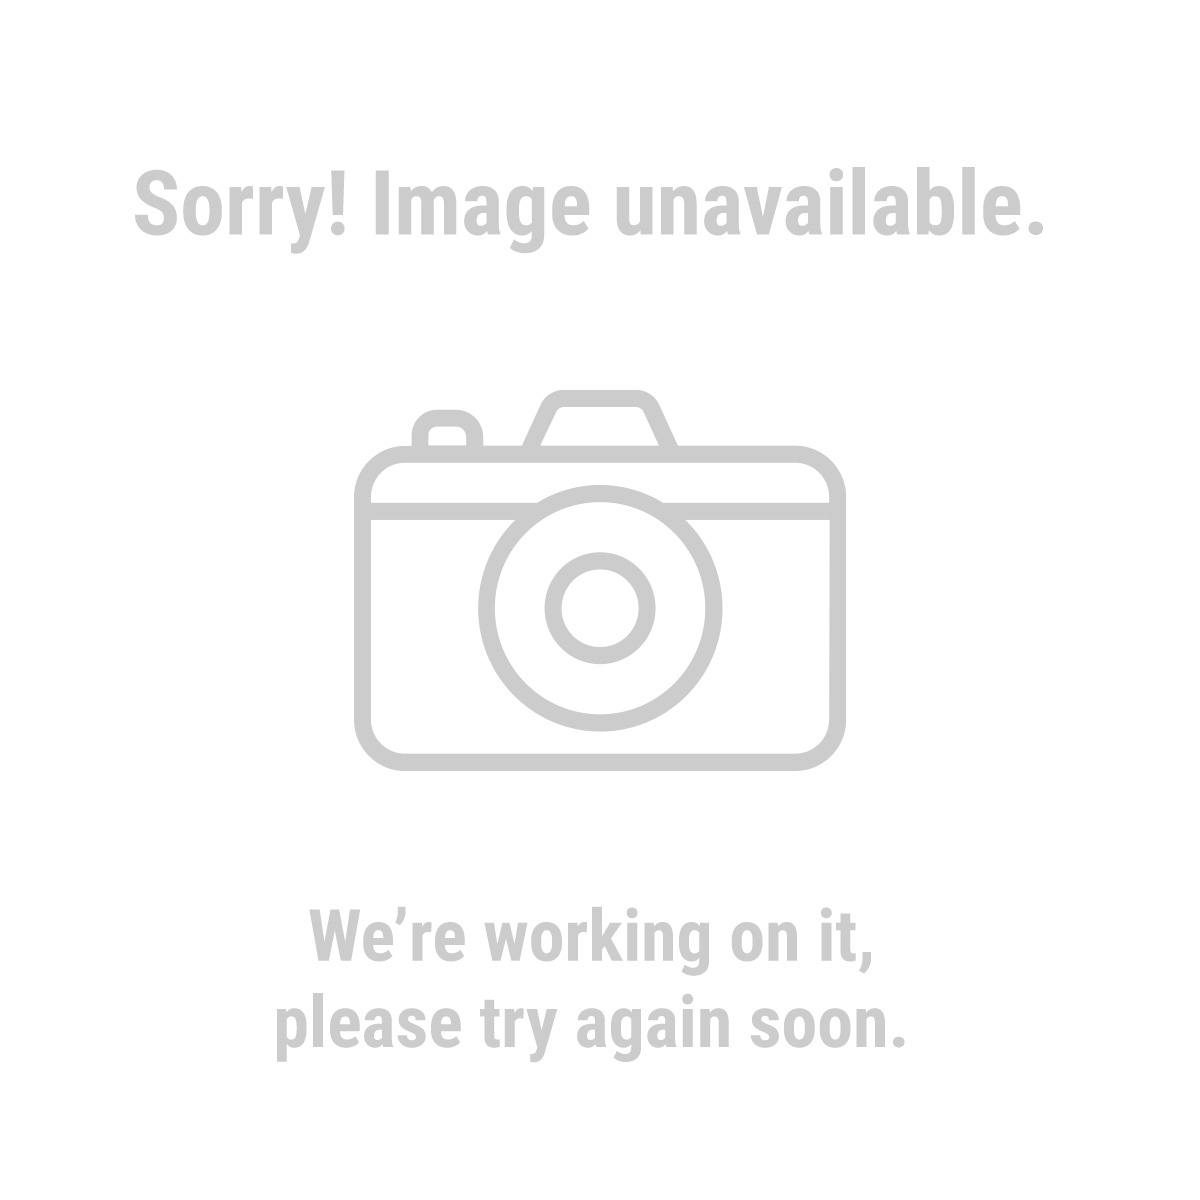 HFT® 45069 25 Ft. Outdoor Extension Cord, Orange